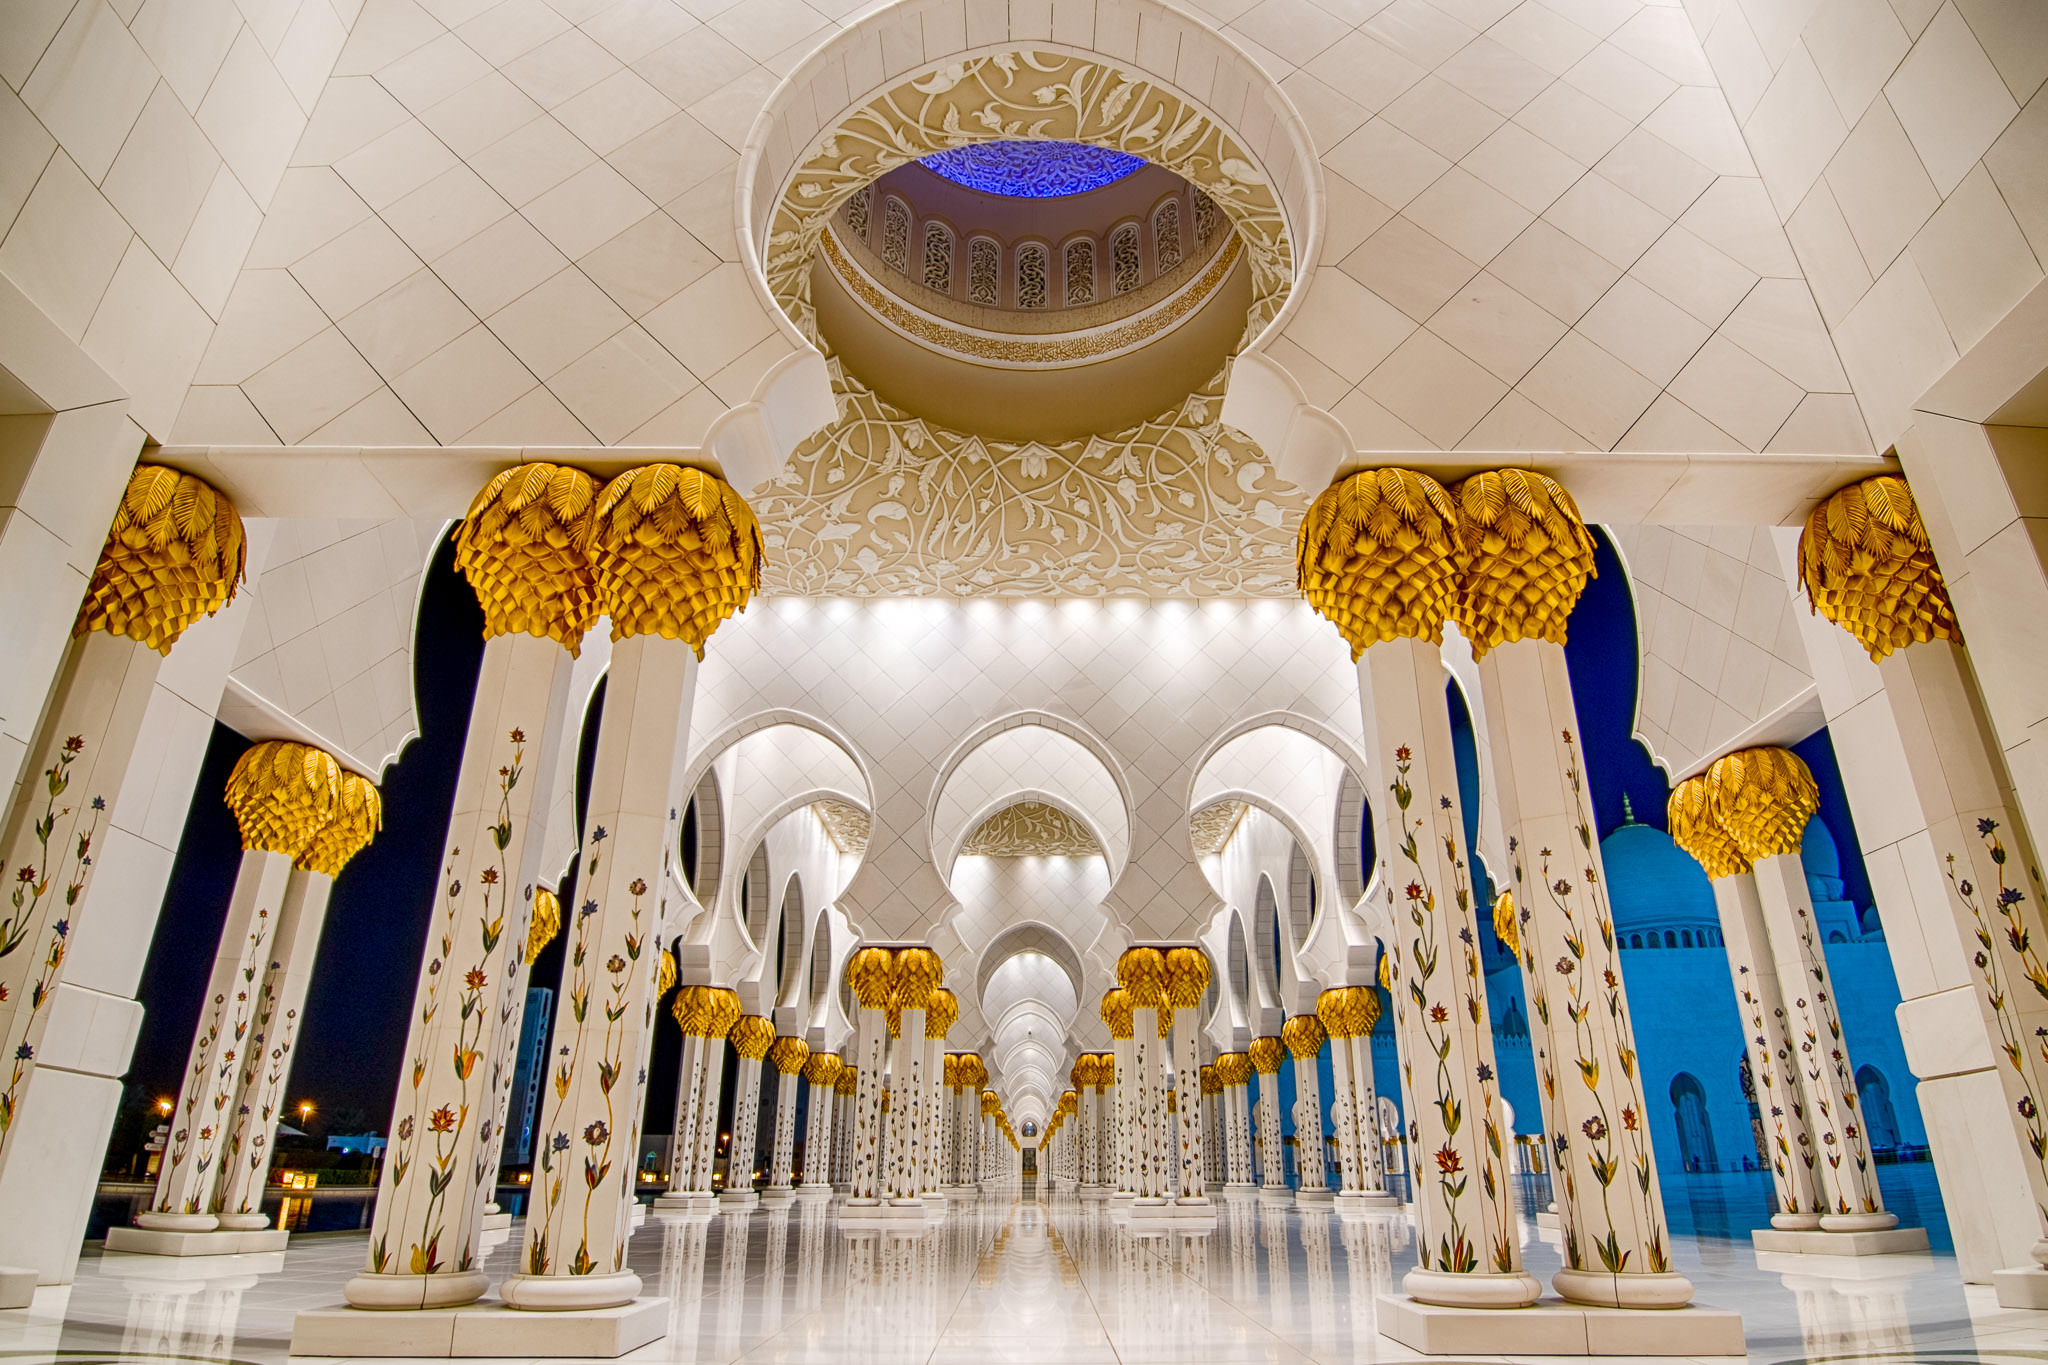 Corridor at Sheikh Zayed Grand Mosque